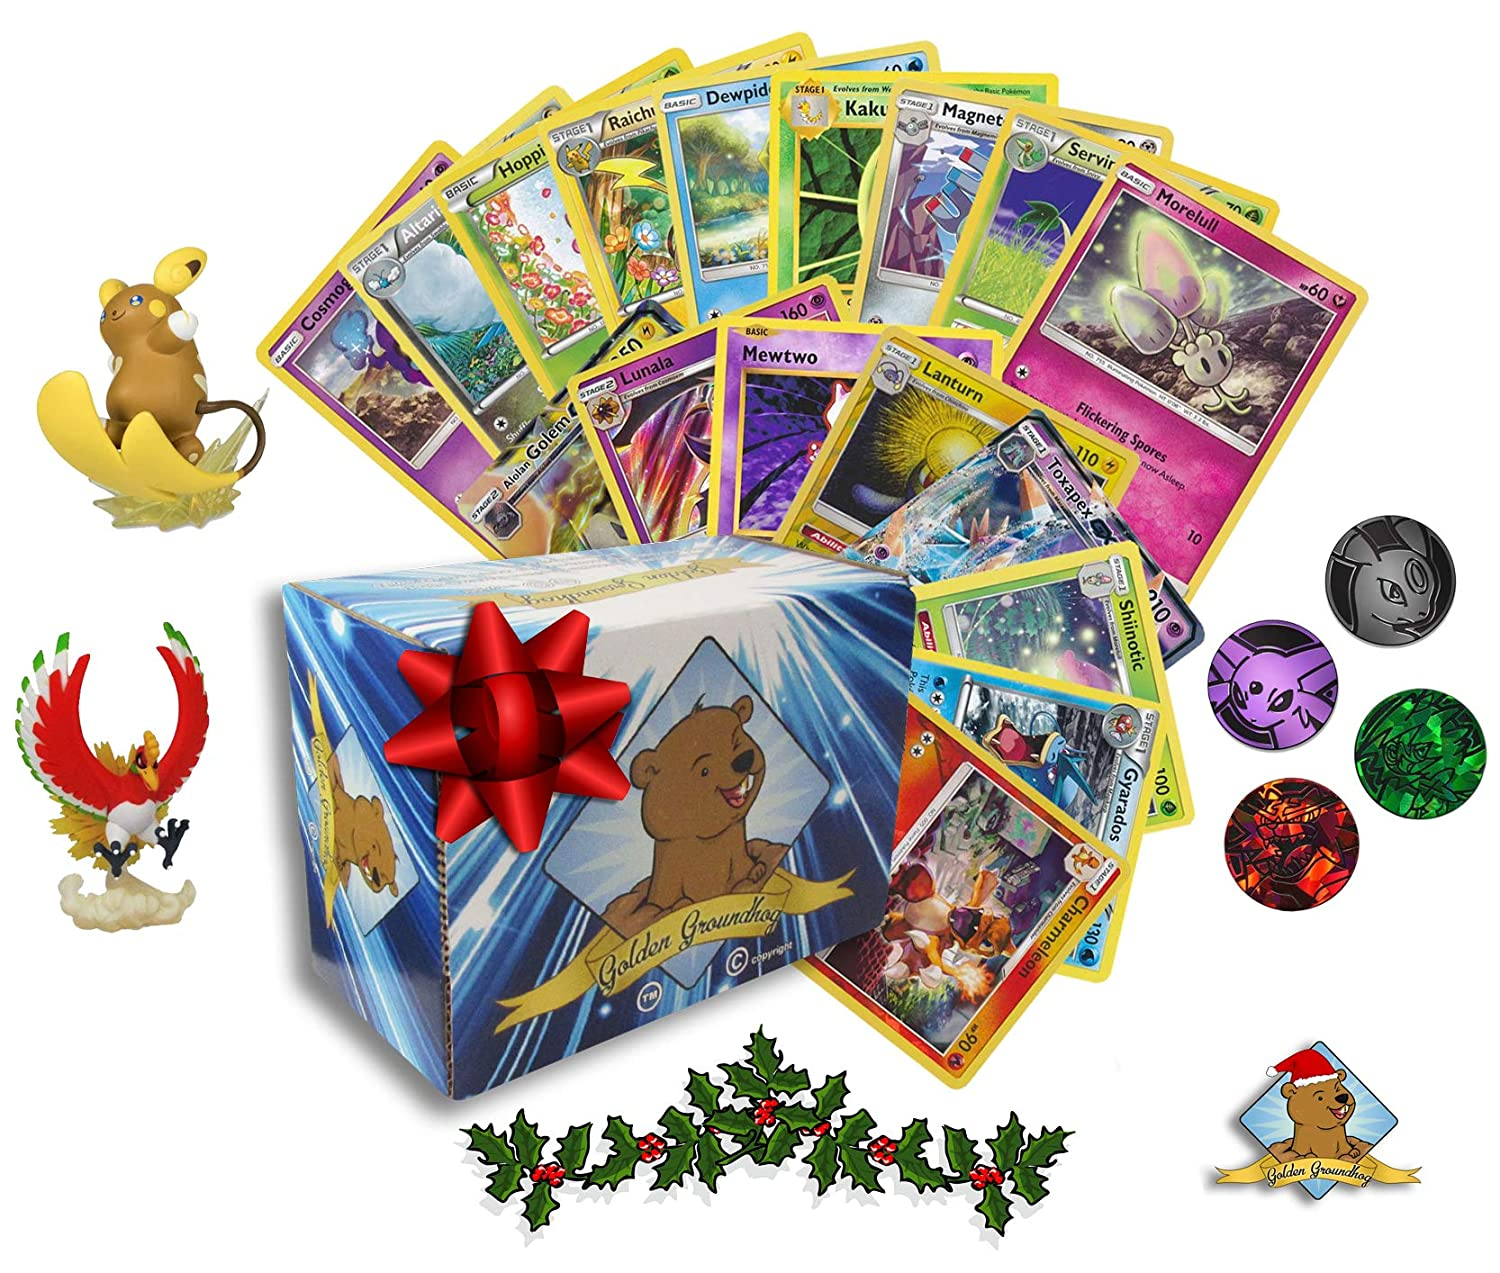 Pokemon Christmas.Amazon Com Pokemon Christmas Bundle Box Lot Pokemon Cards